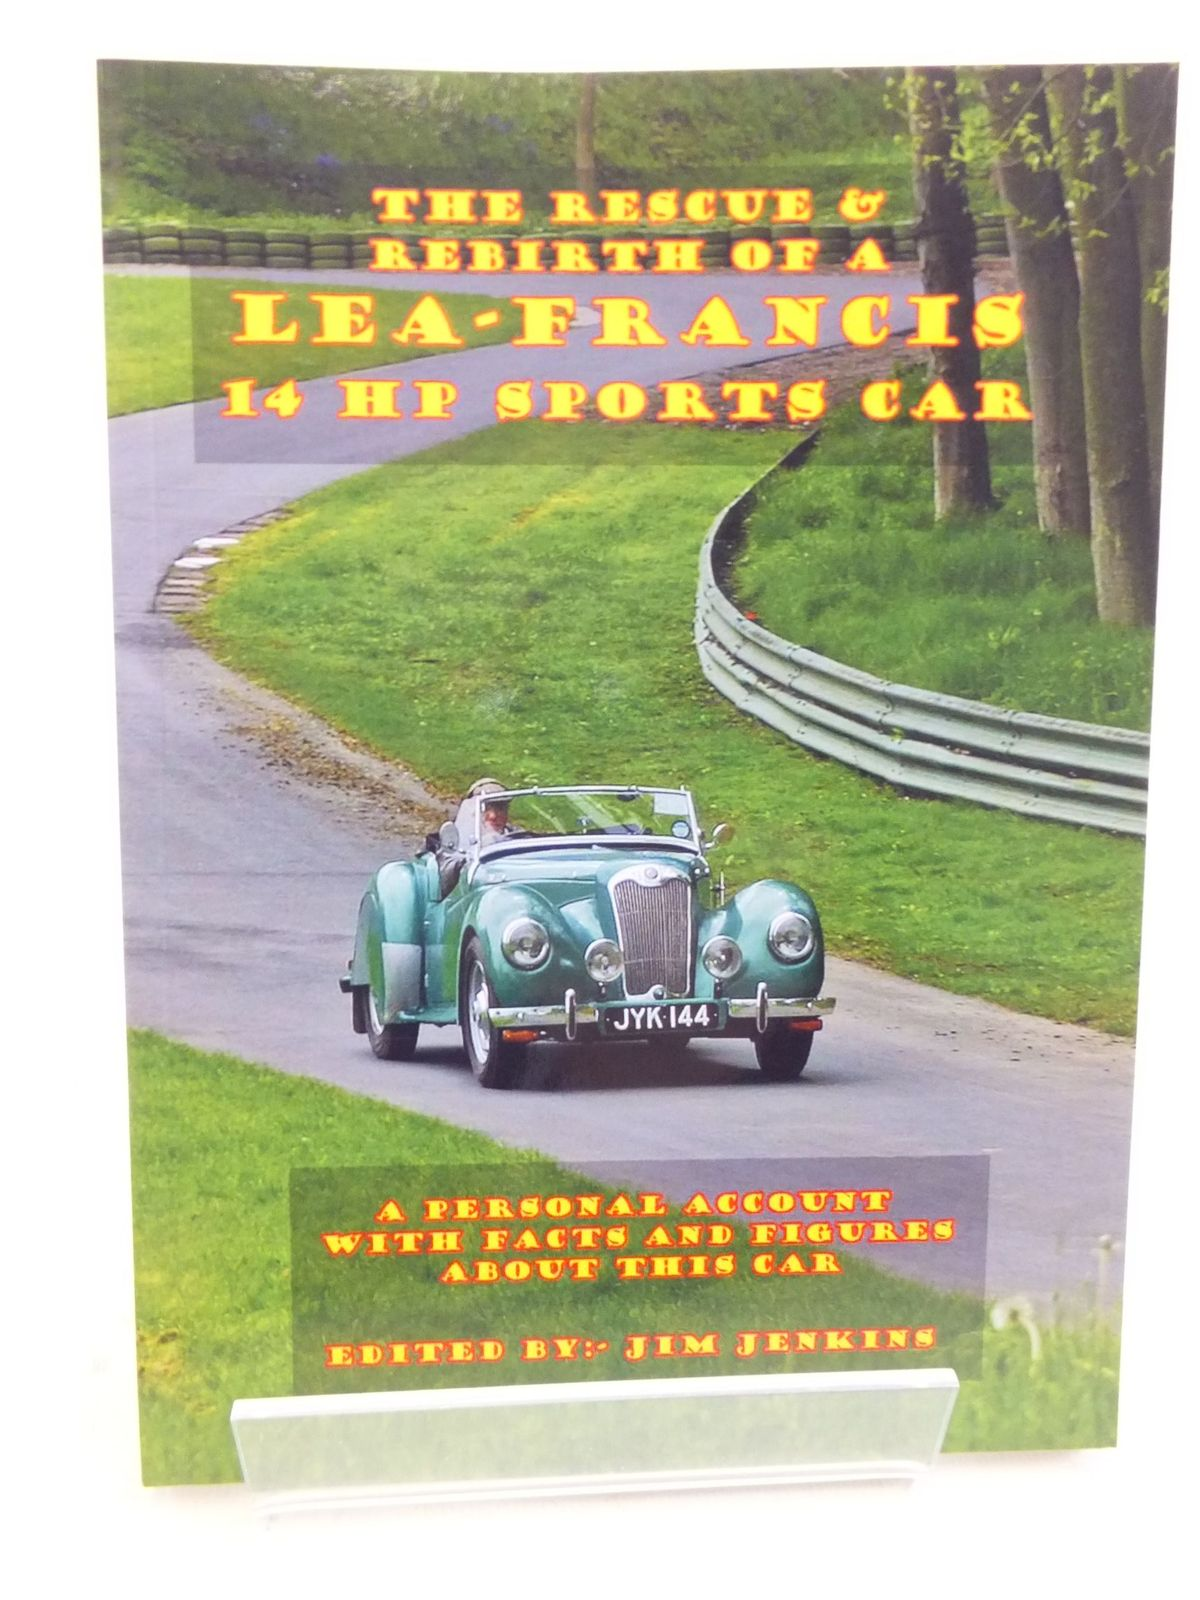 Photo of THE RESCUE & REBIRTH OF A LEA-FRANCIS 14 HP SPORTS CAR written by Jenkins, Jim published by Jim Jenkins (STOCK CODE: 2113923)  for sale by Stella & Rose's Books